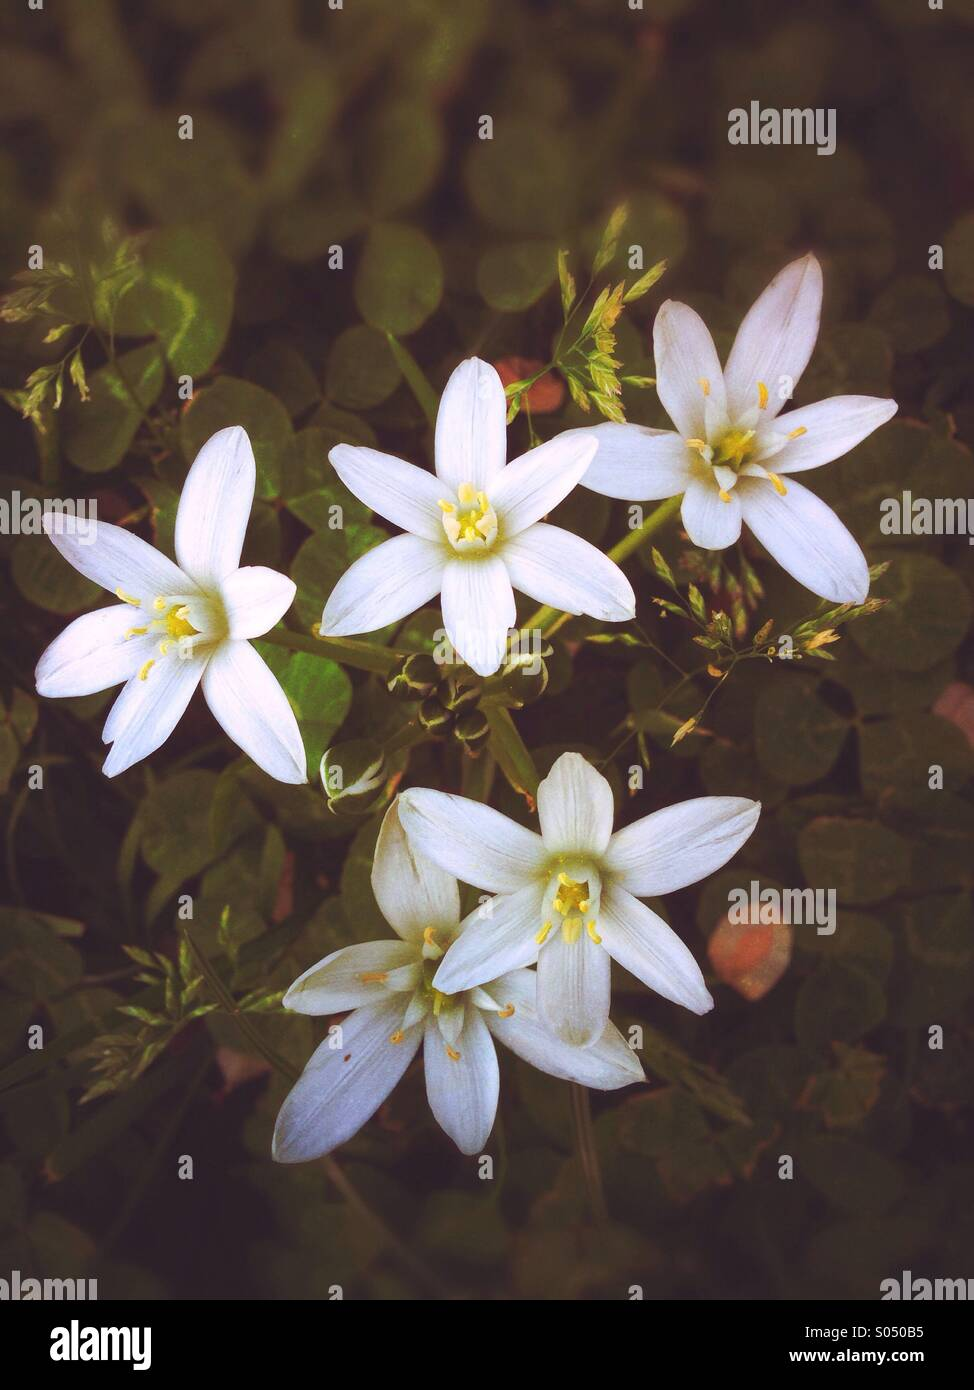 Tiny flowers - Stock Image